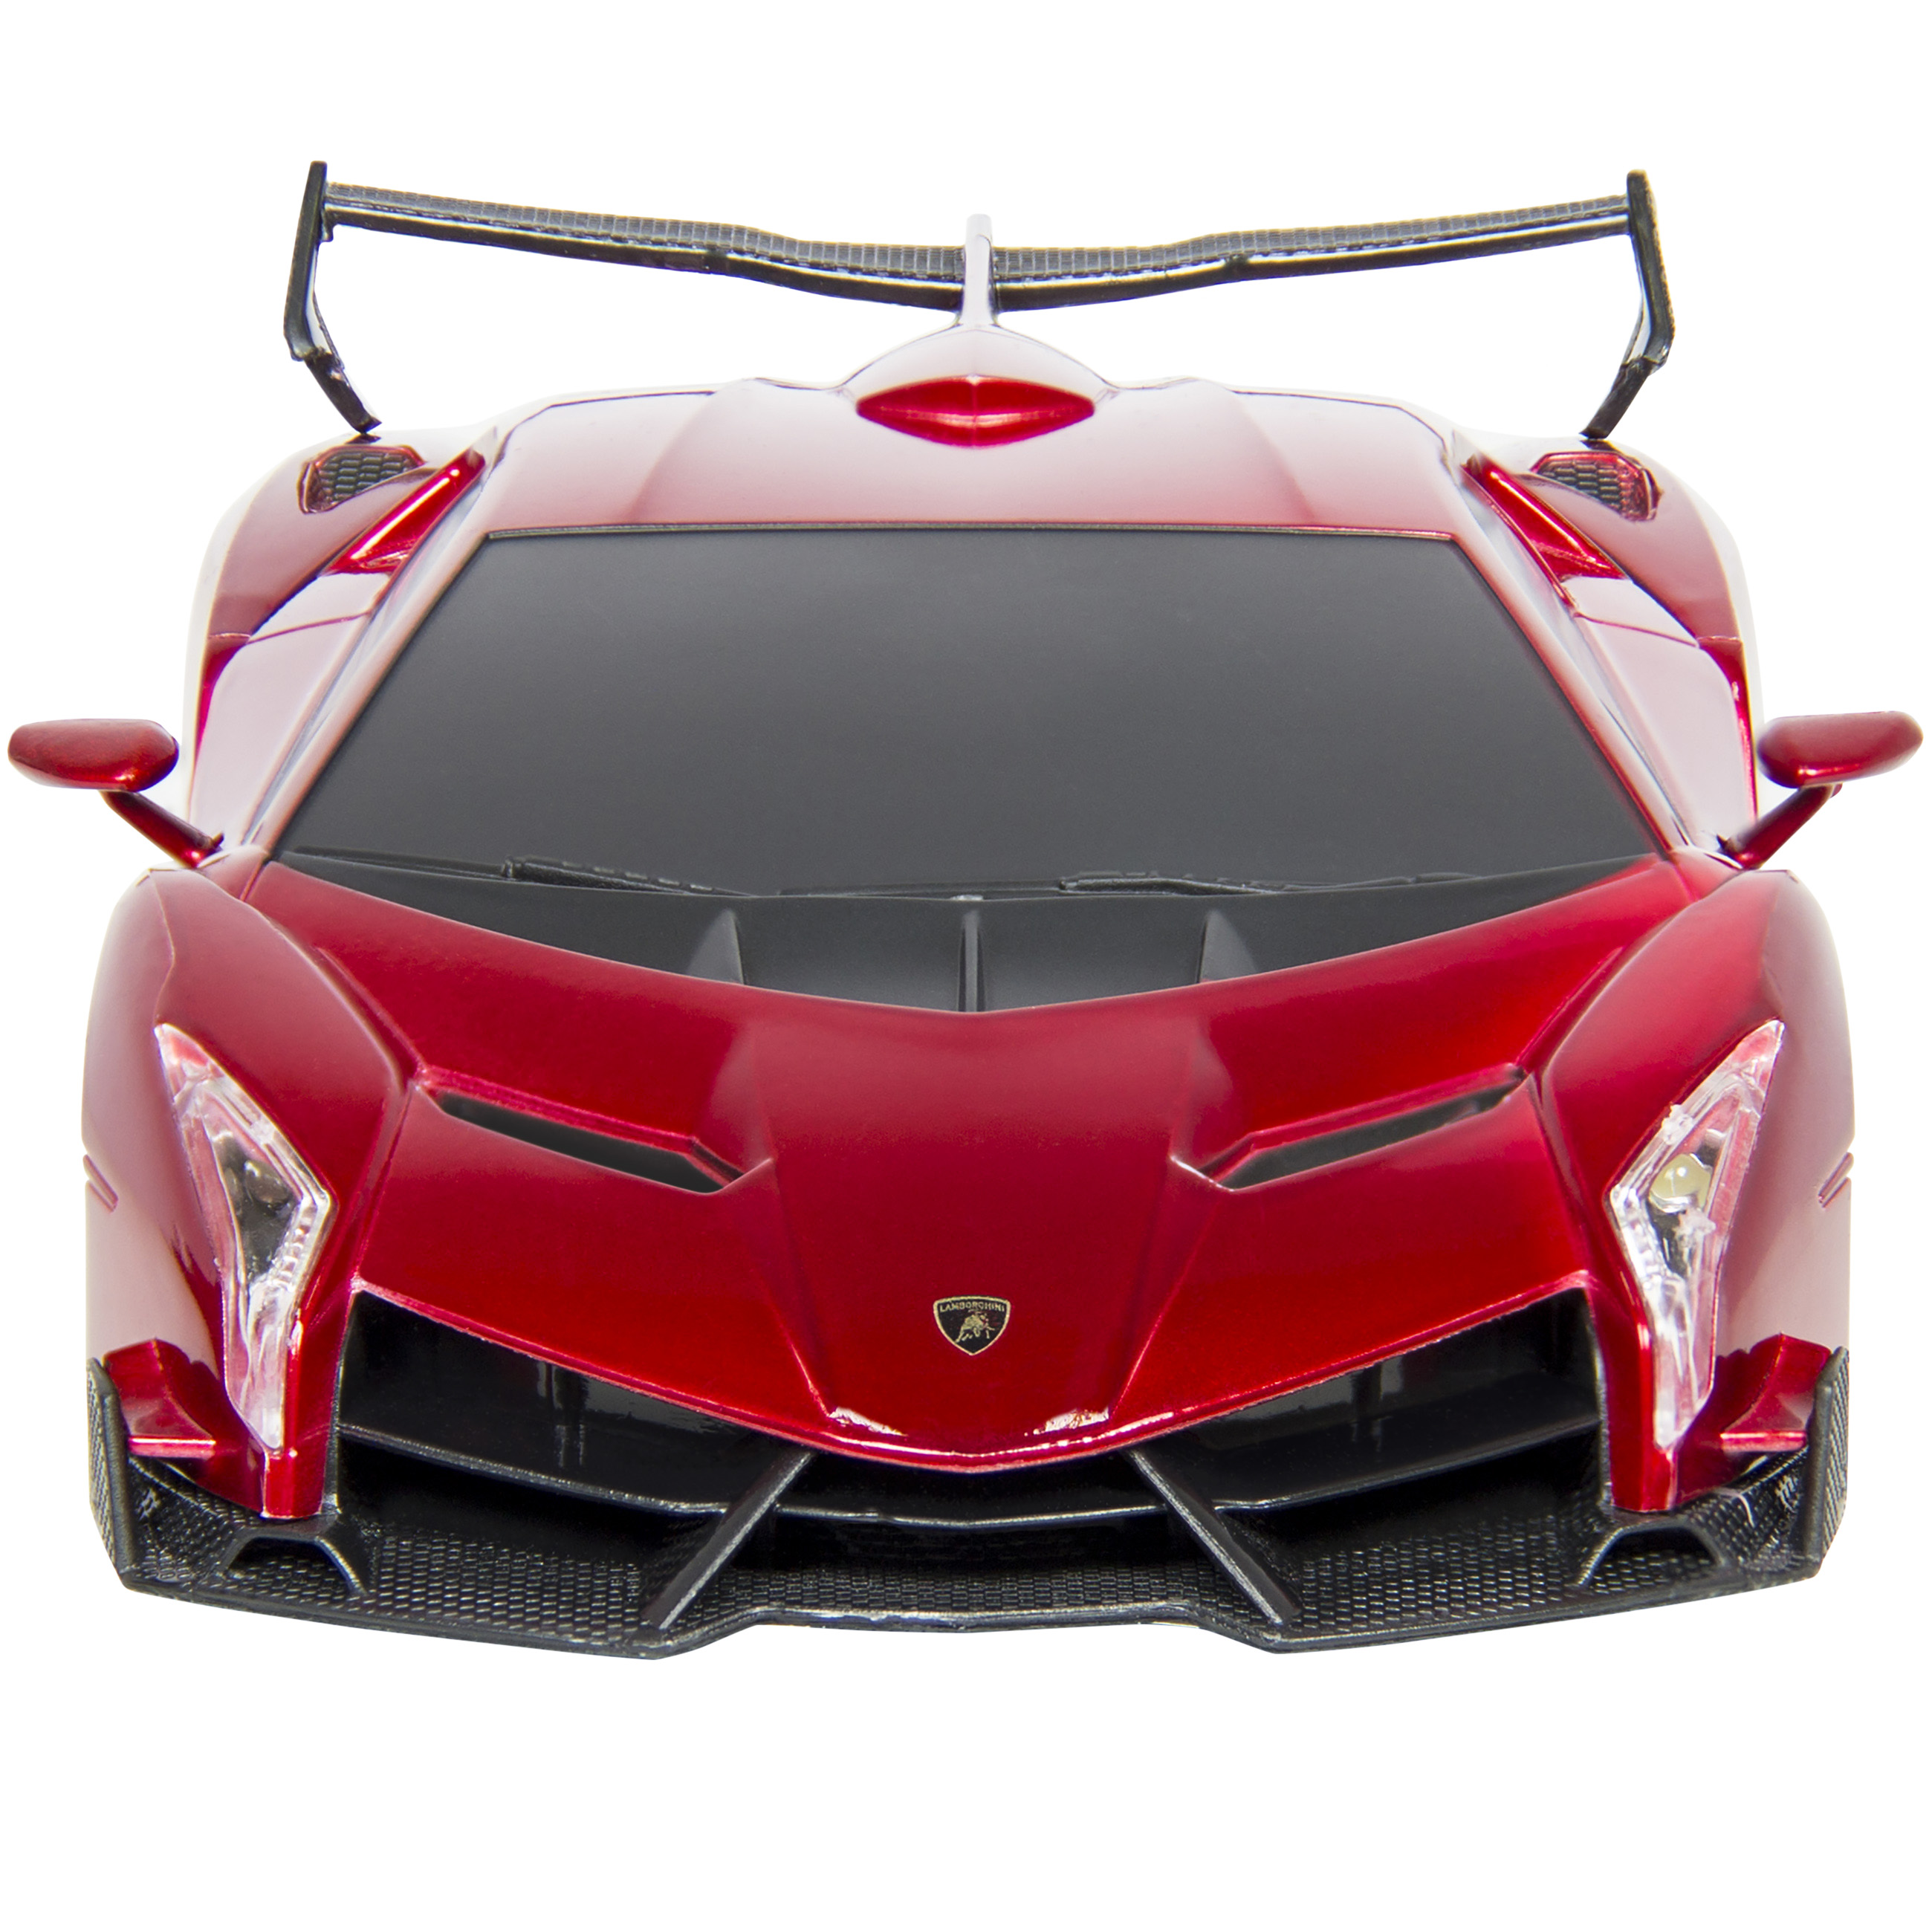 Best Choice Products 1/24 Officially Licensed RC Lamborghini Veneno Sport  Racing Car W/ 27MHz Remote Controller   Walmart.com